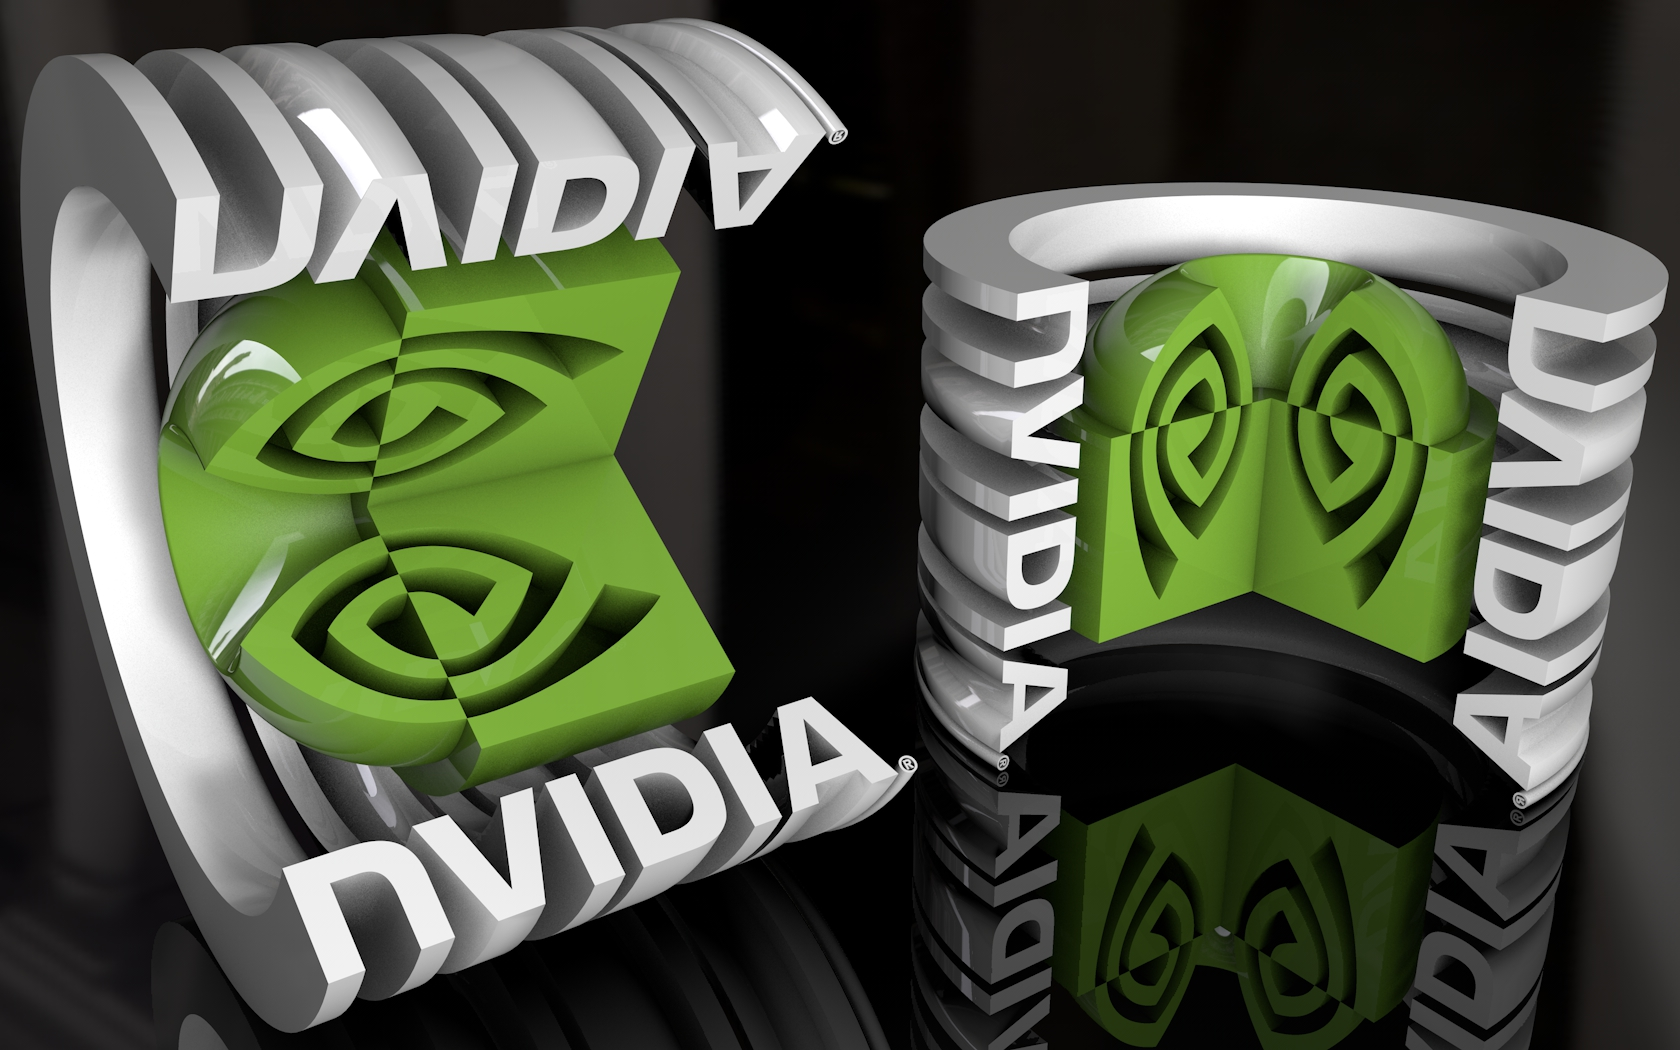 Download Cool NVIDIA Wallpapers | NVIDIA Cool Stuff - HD Wallpapers